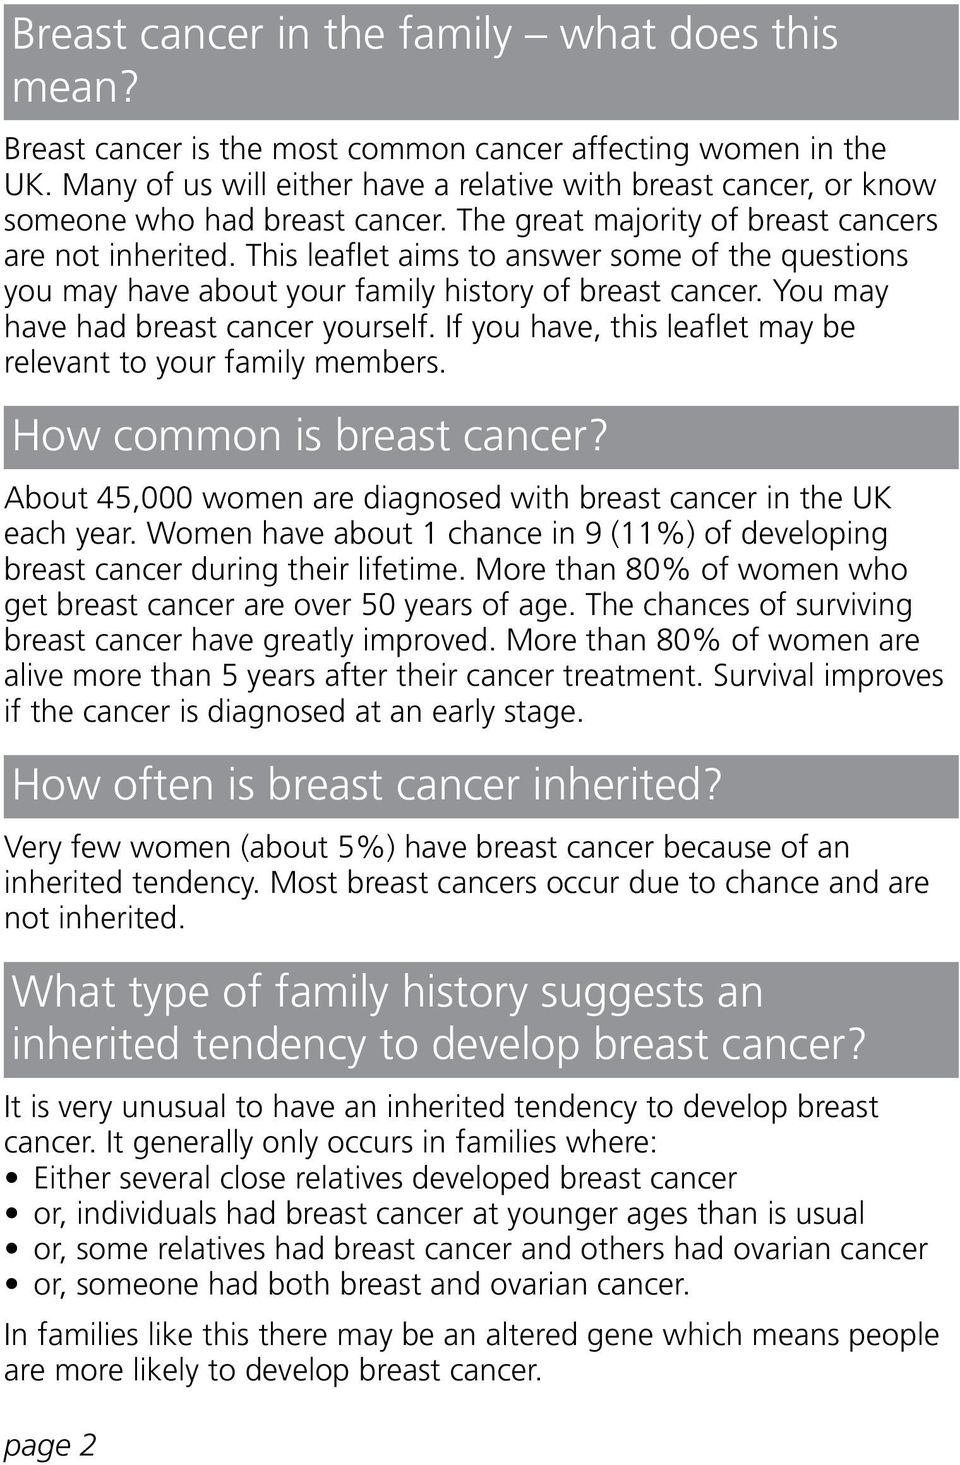 This leaflet aims to answer some of the questions you may have about your family history of breast cancer. You may have had breast cancer yourself.